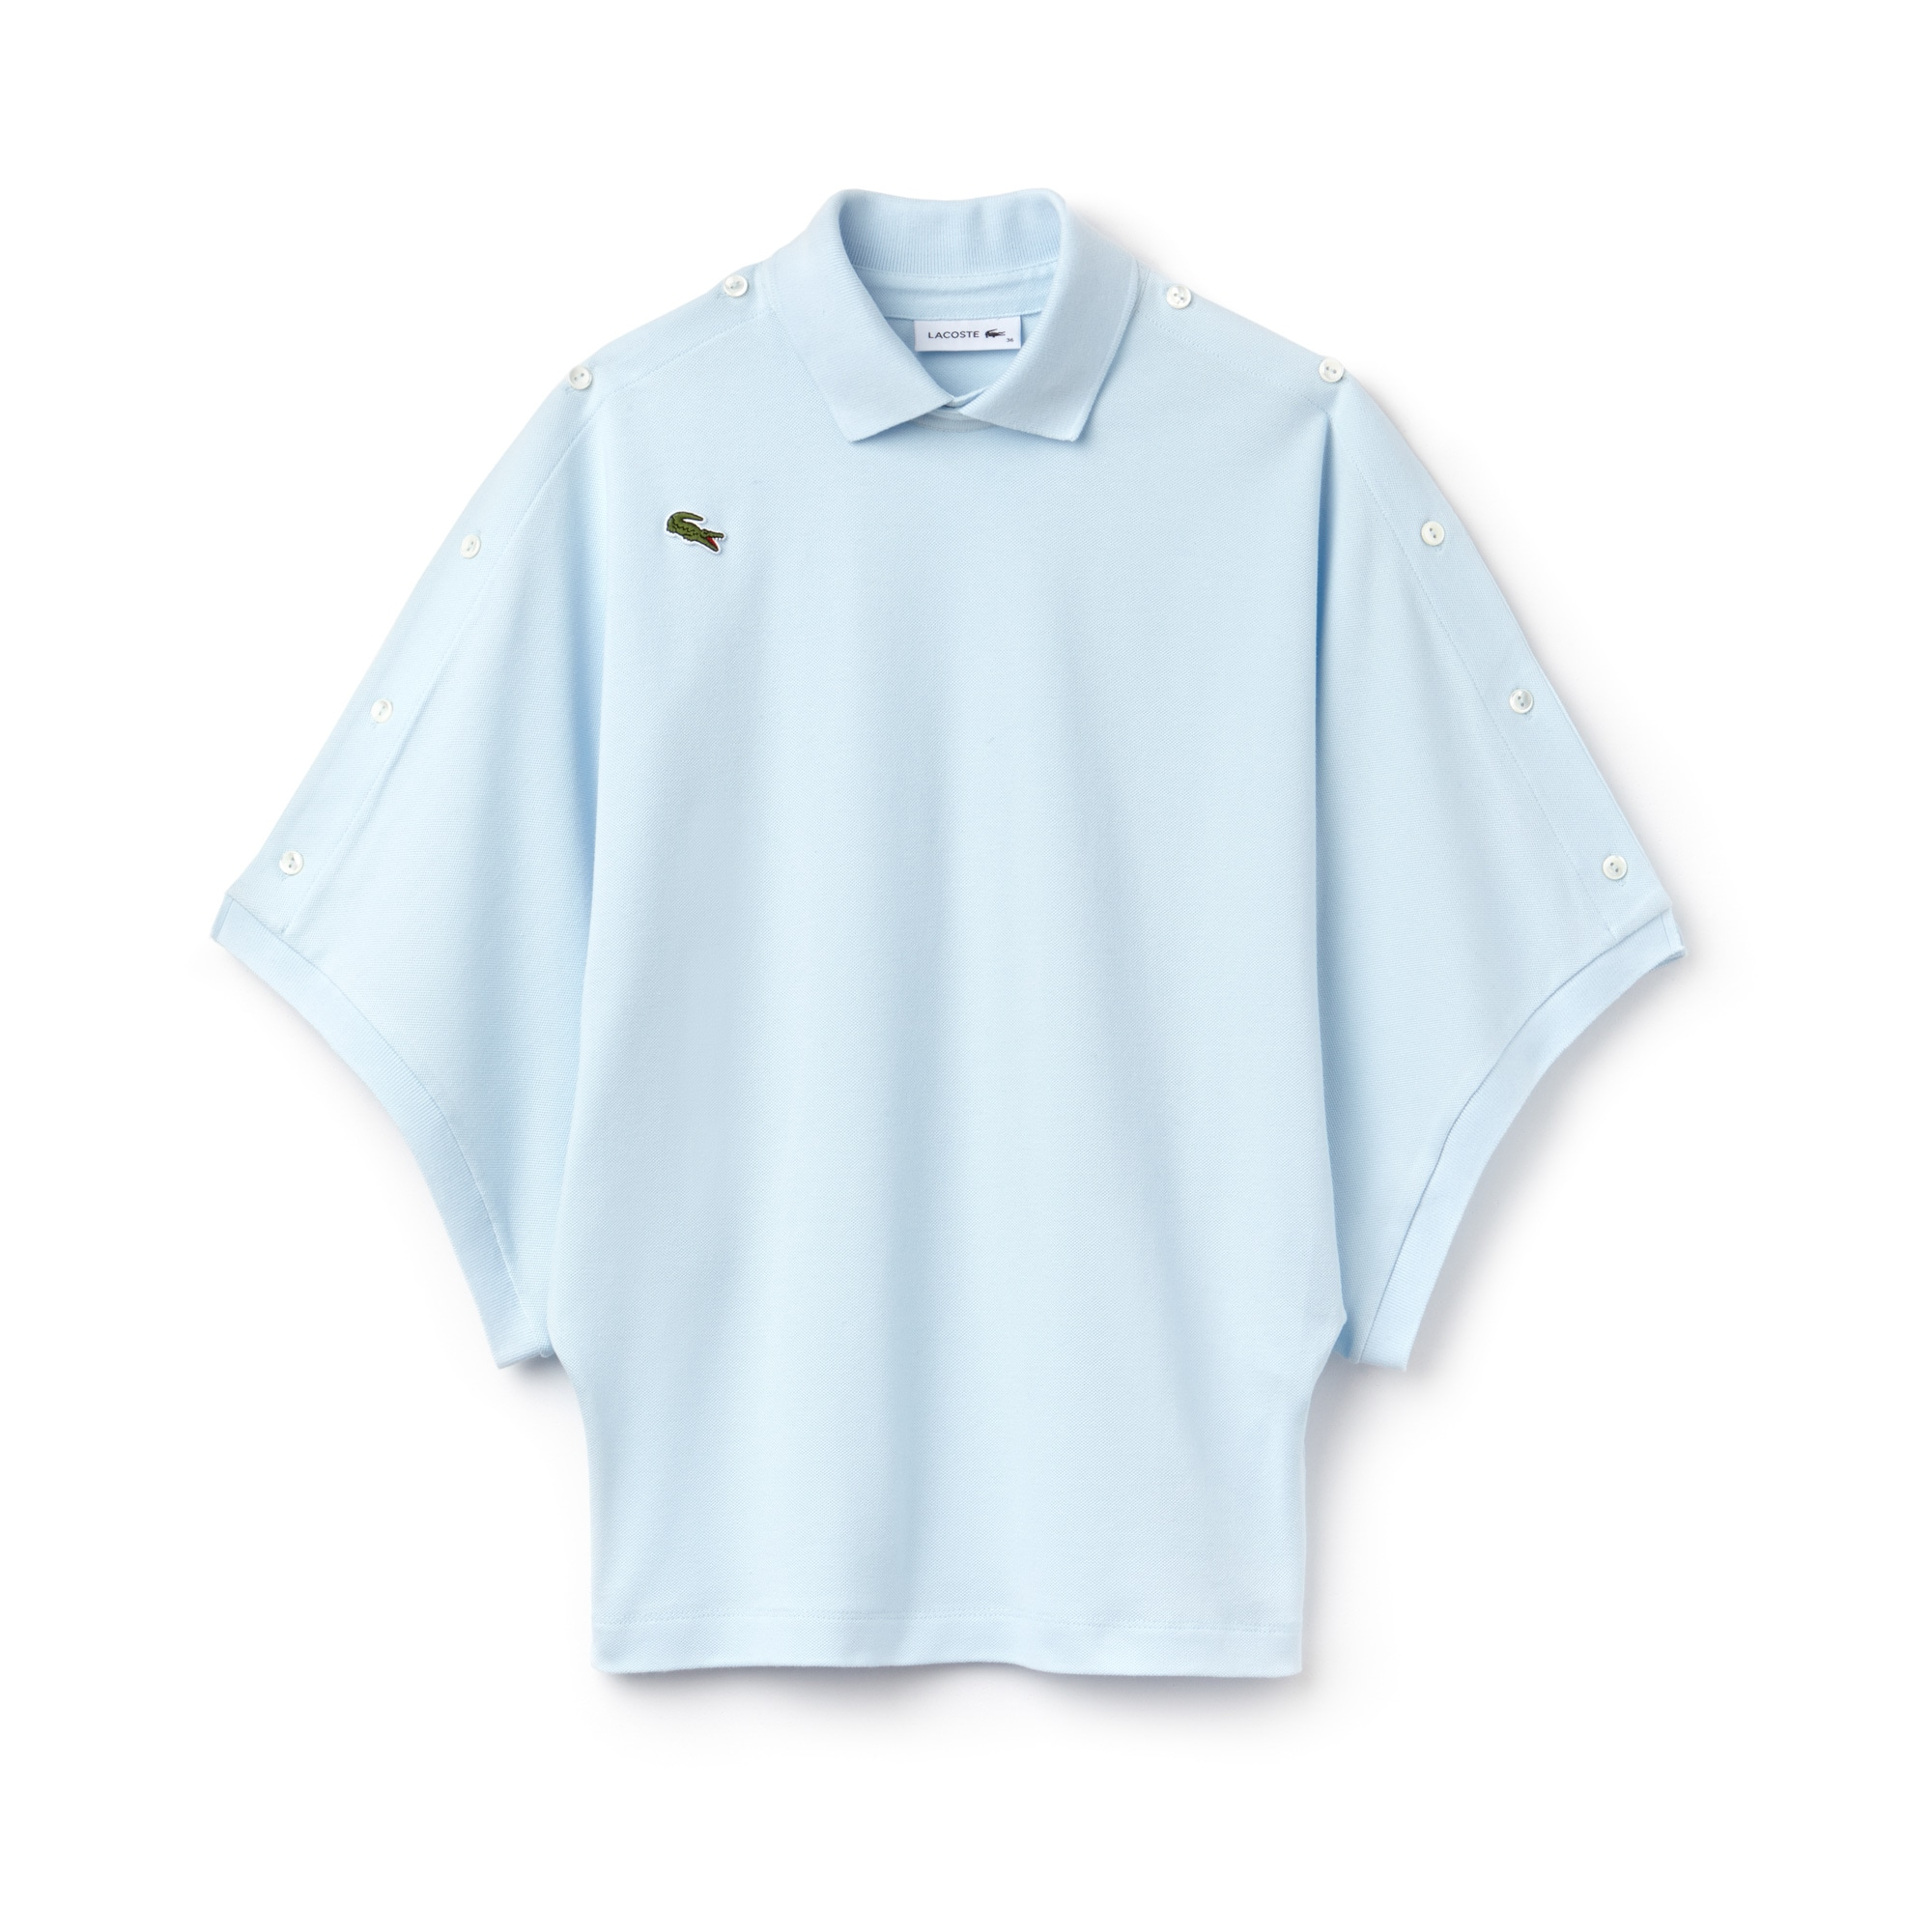 Women's Lacoste Fashion Show Loose Fit Buttoned Sleeves Cotton Piqué Polo Shirt